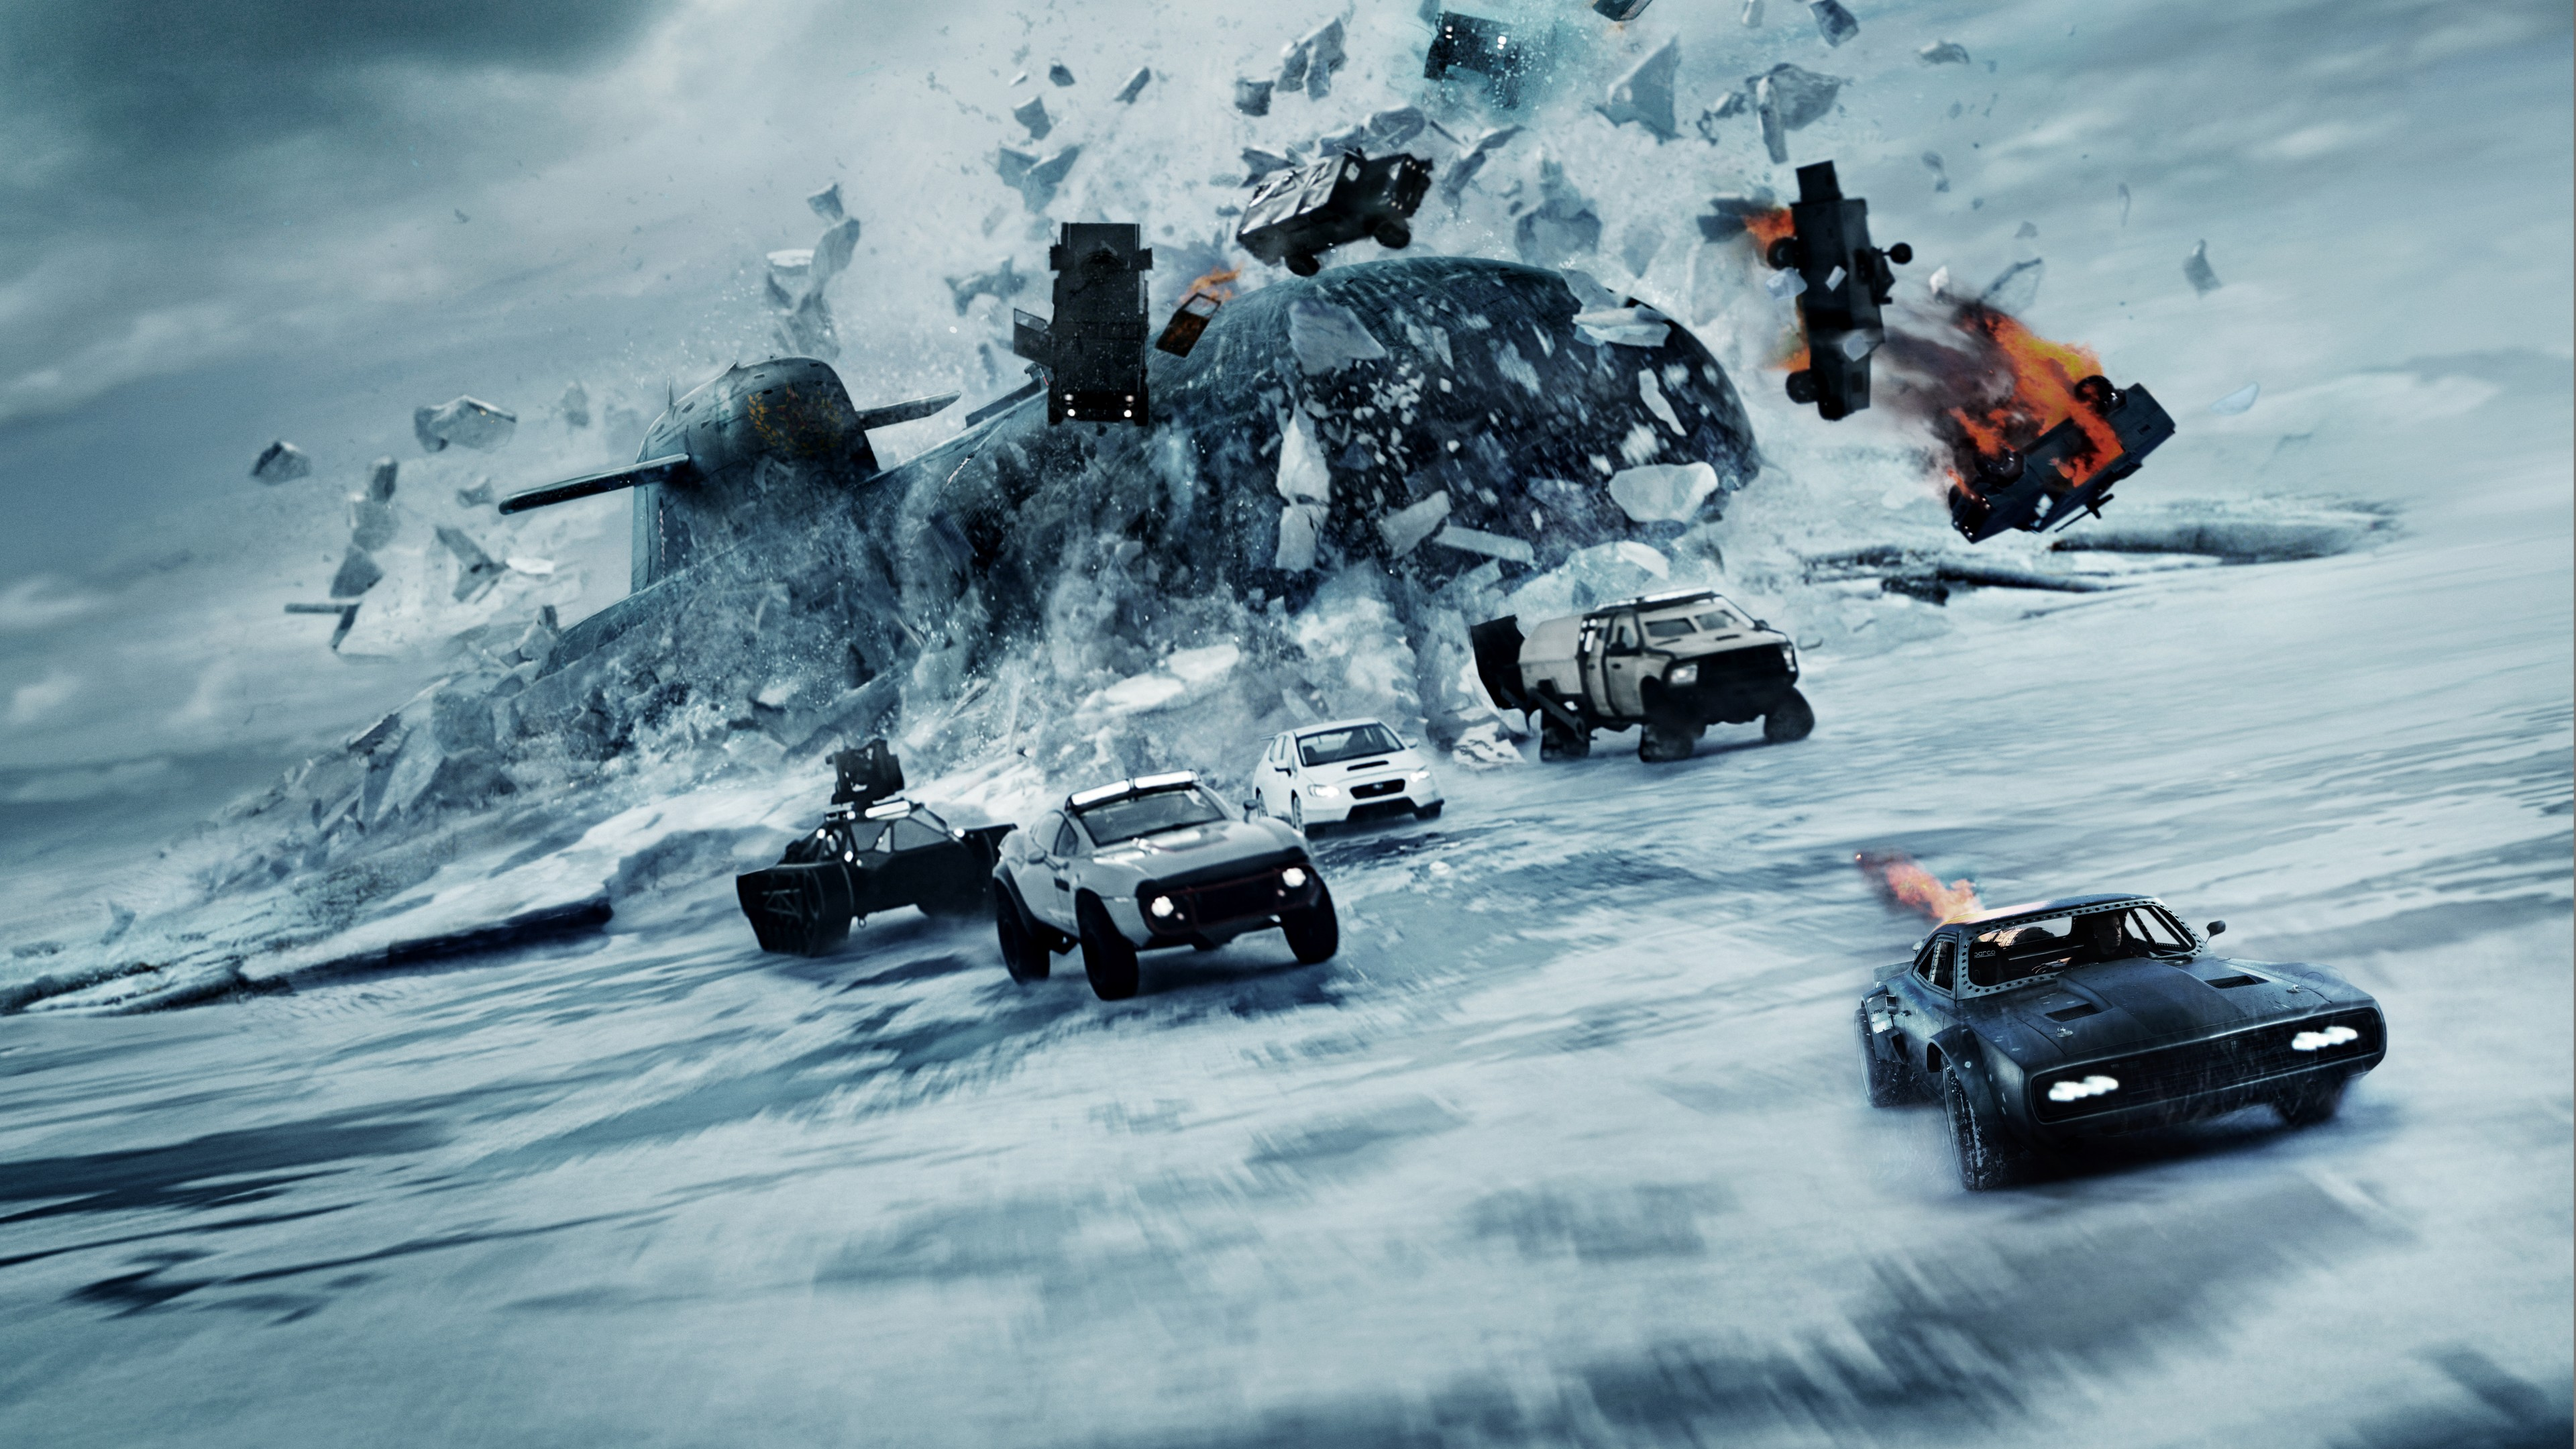 Fast And Furious 8 Wallpaper Hd The Fate Of The Furious 4k 8k Wallpapers Hd Wallpapers